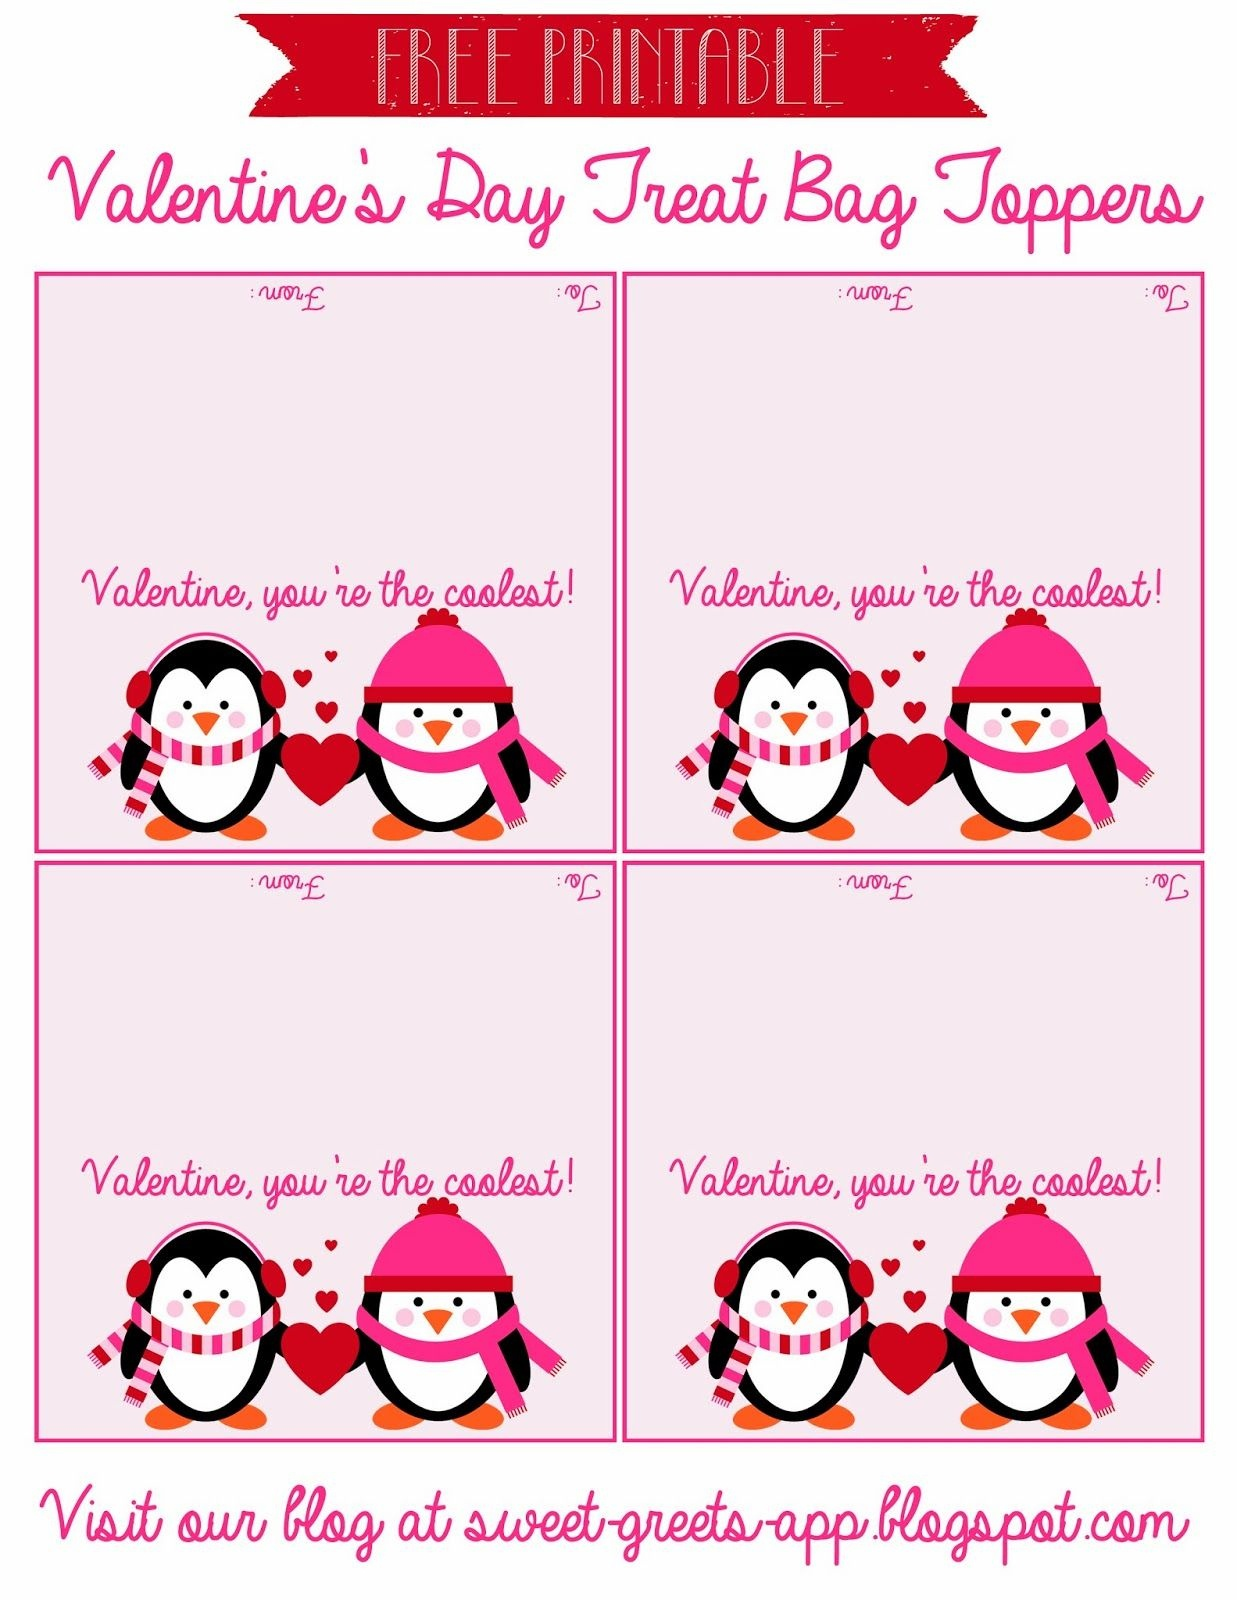 Free Printable Valentine's Day Treat Bag Toppers | Valentine's Day - Free Printable Bag Toppers